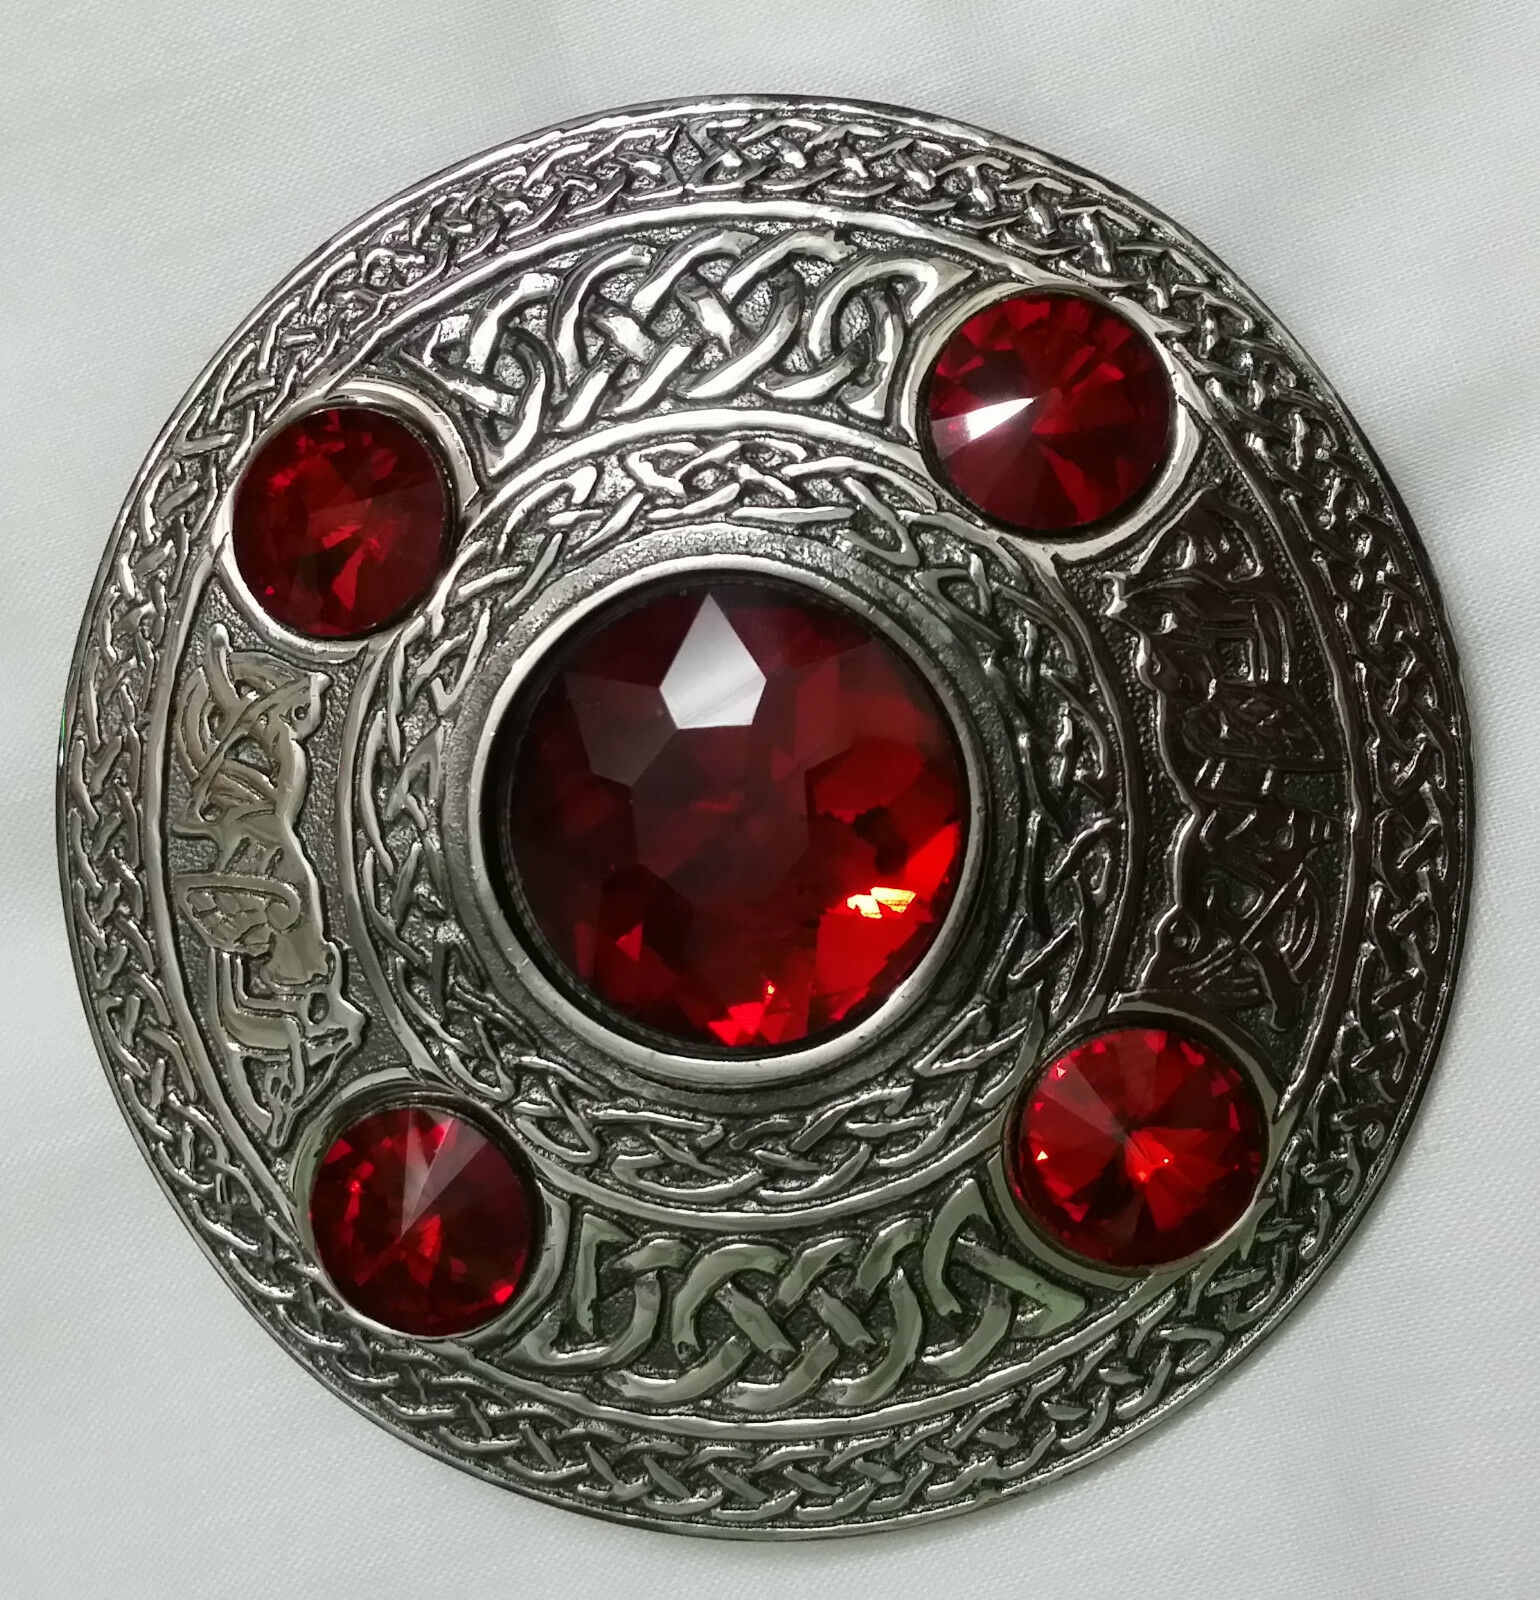 Celtic Fly Plaid Brooch Red Stone Antique Finish Scottish Kilt Pin & Brooches 4